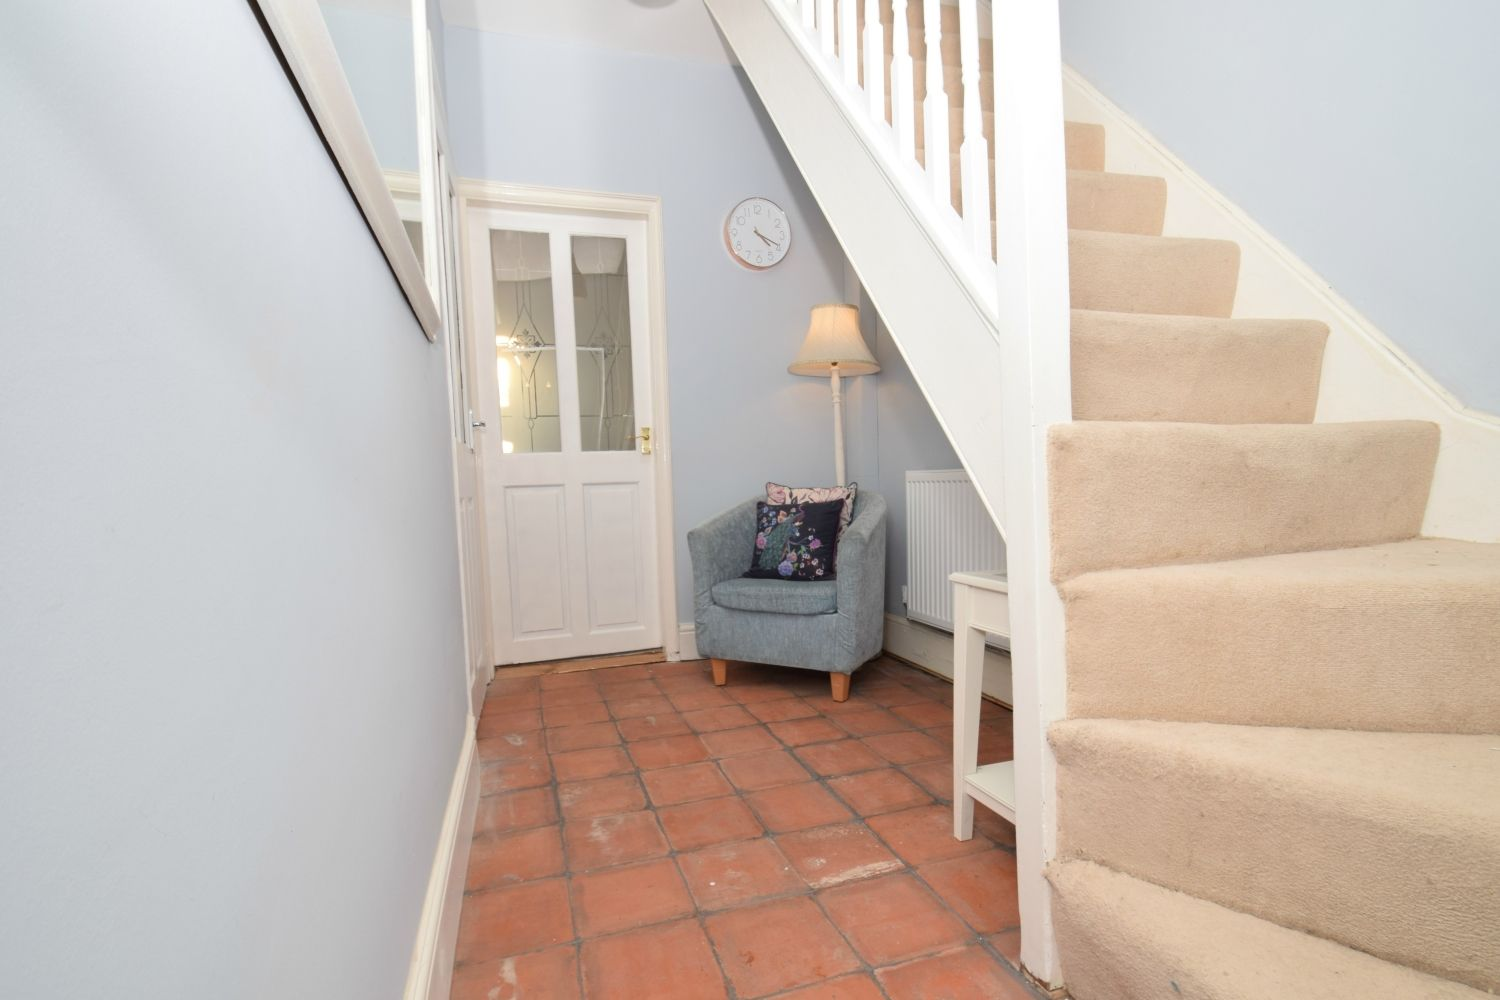 4 bed semi-detached for sale in Upland Grove, Bromsgrove, B61 7